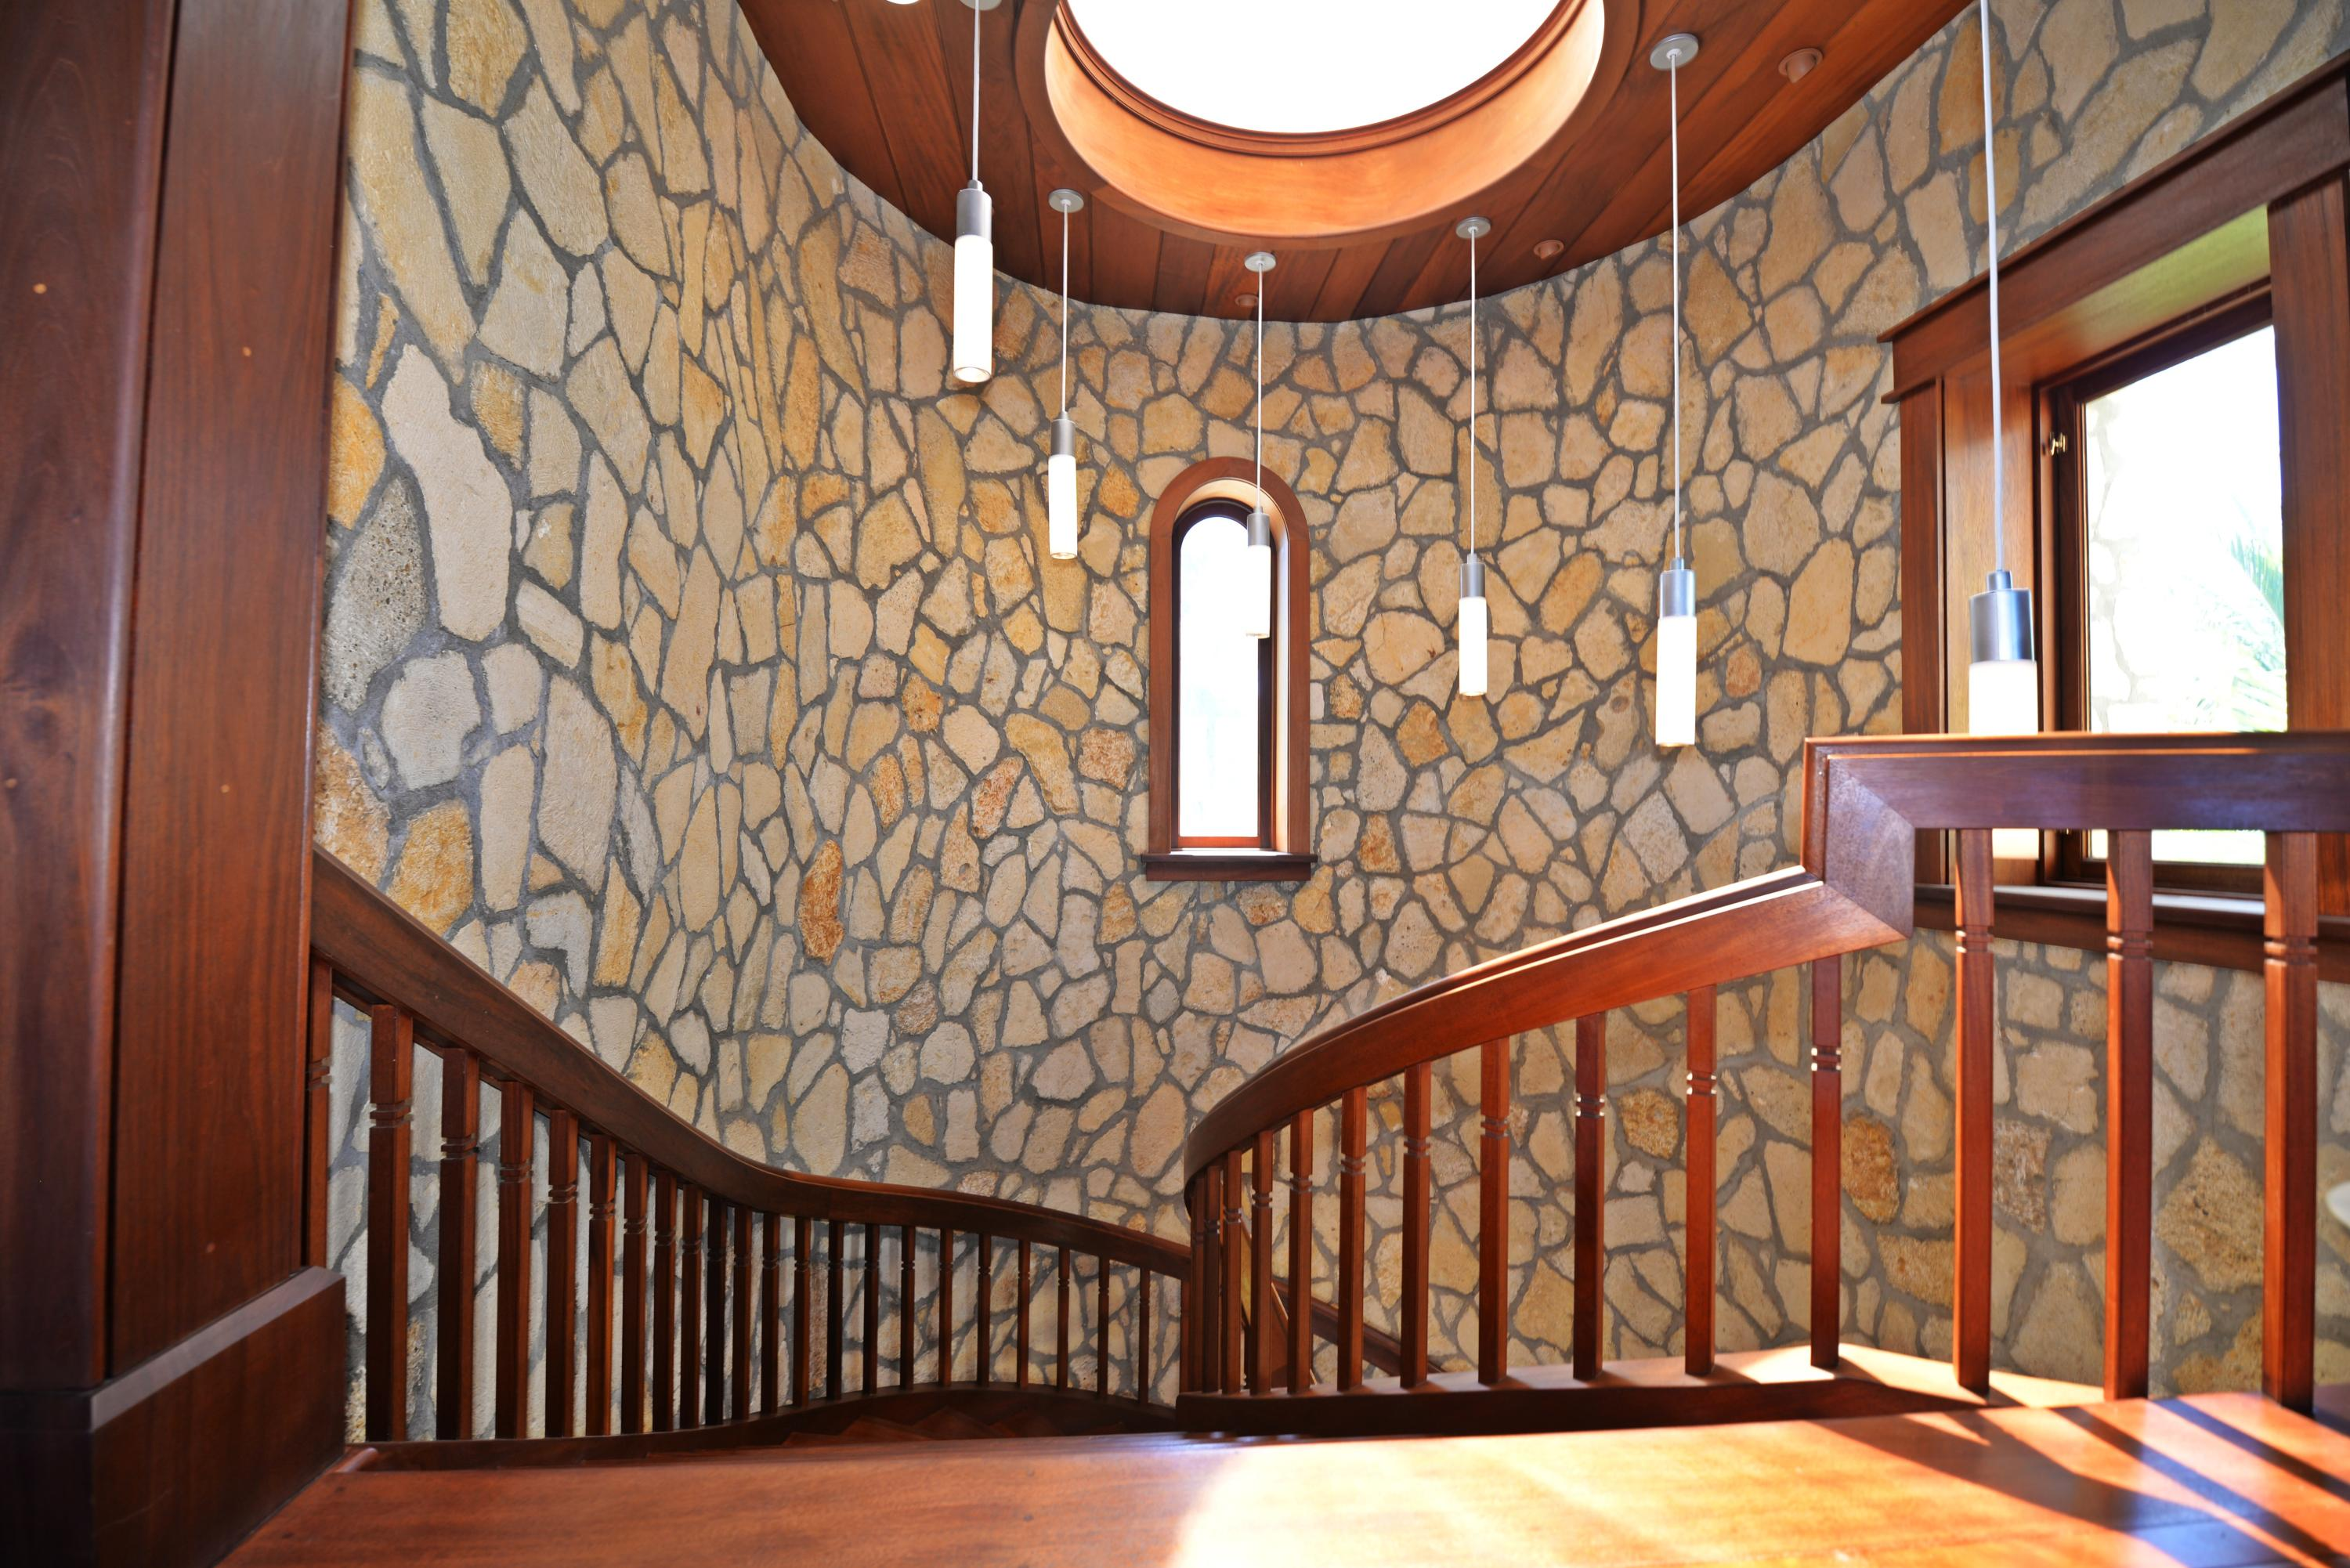 Stairwell to upper level with custom pen